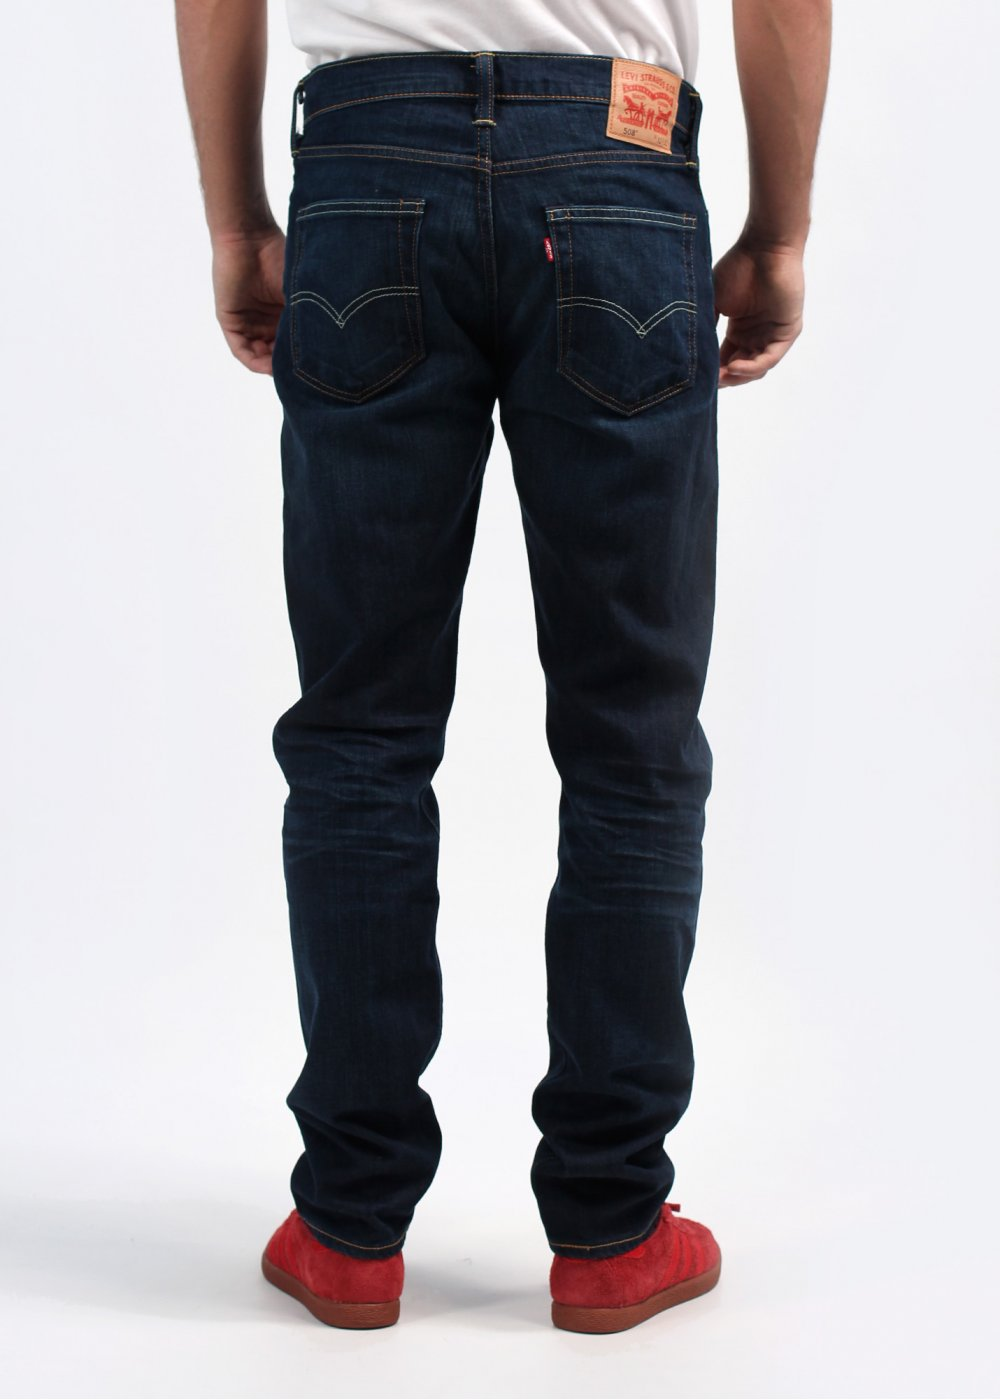 Levi's 508 Regular Tapered Jeans